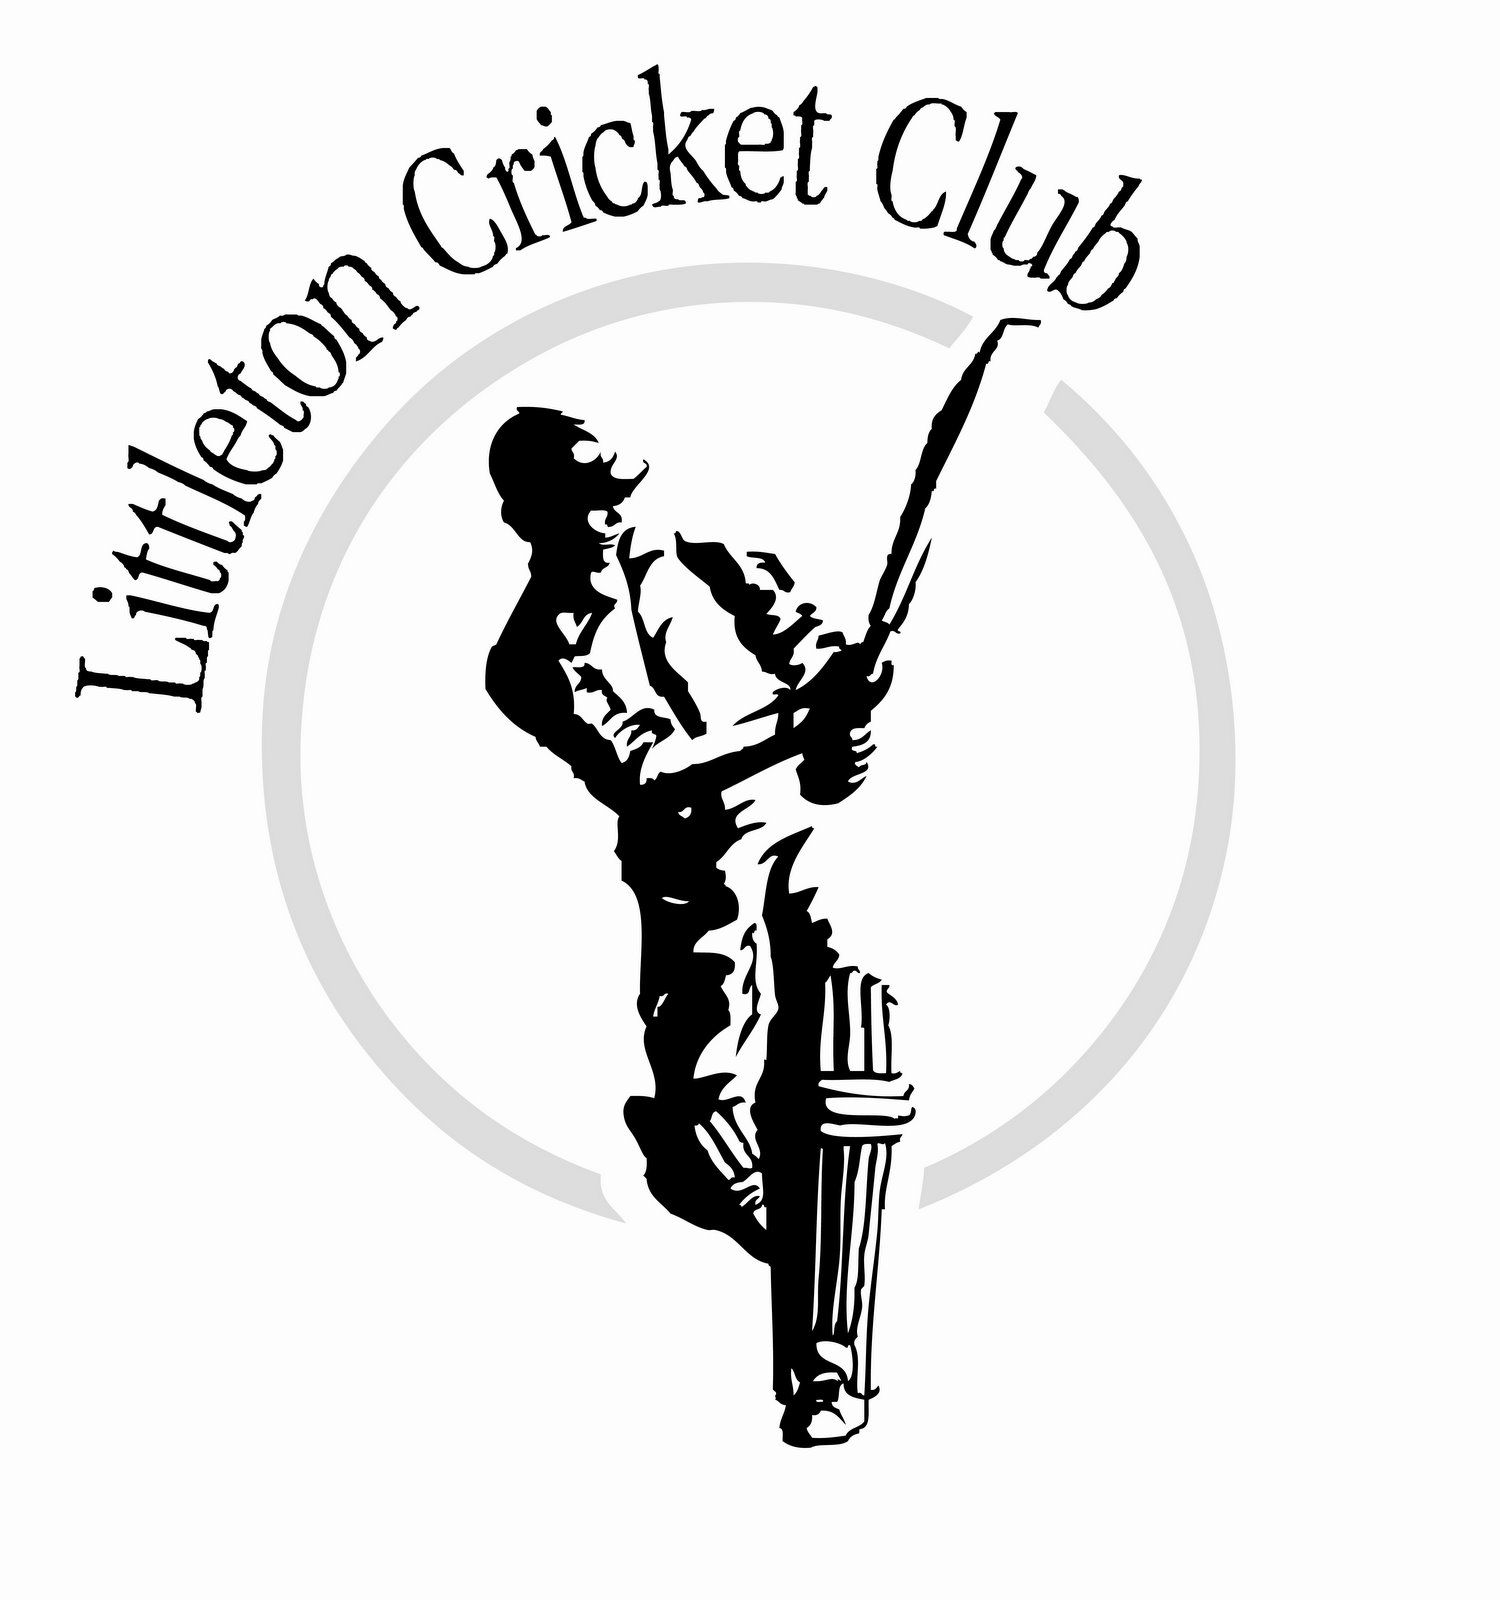 Cricket Team Logo Clipart.